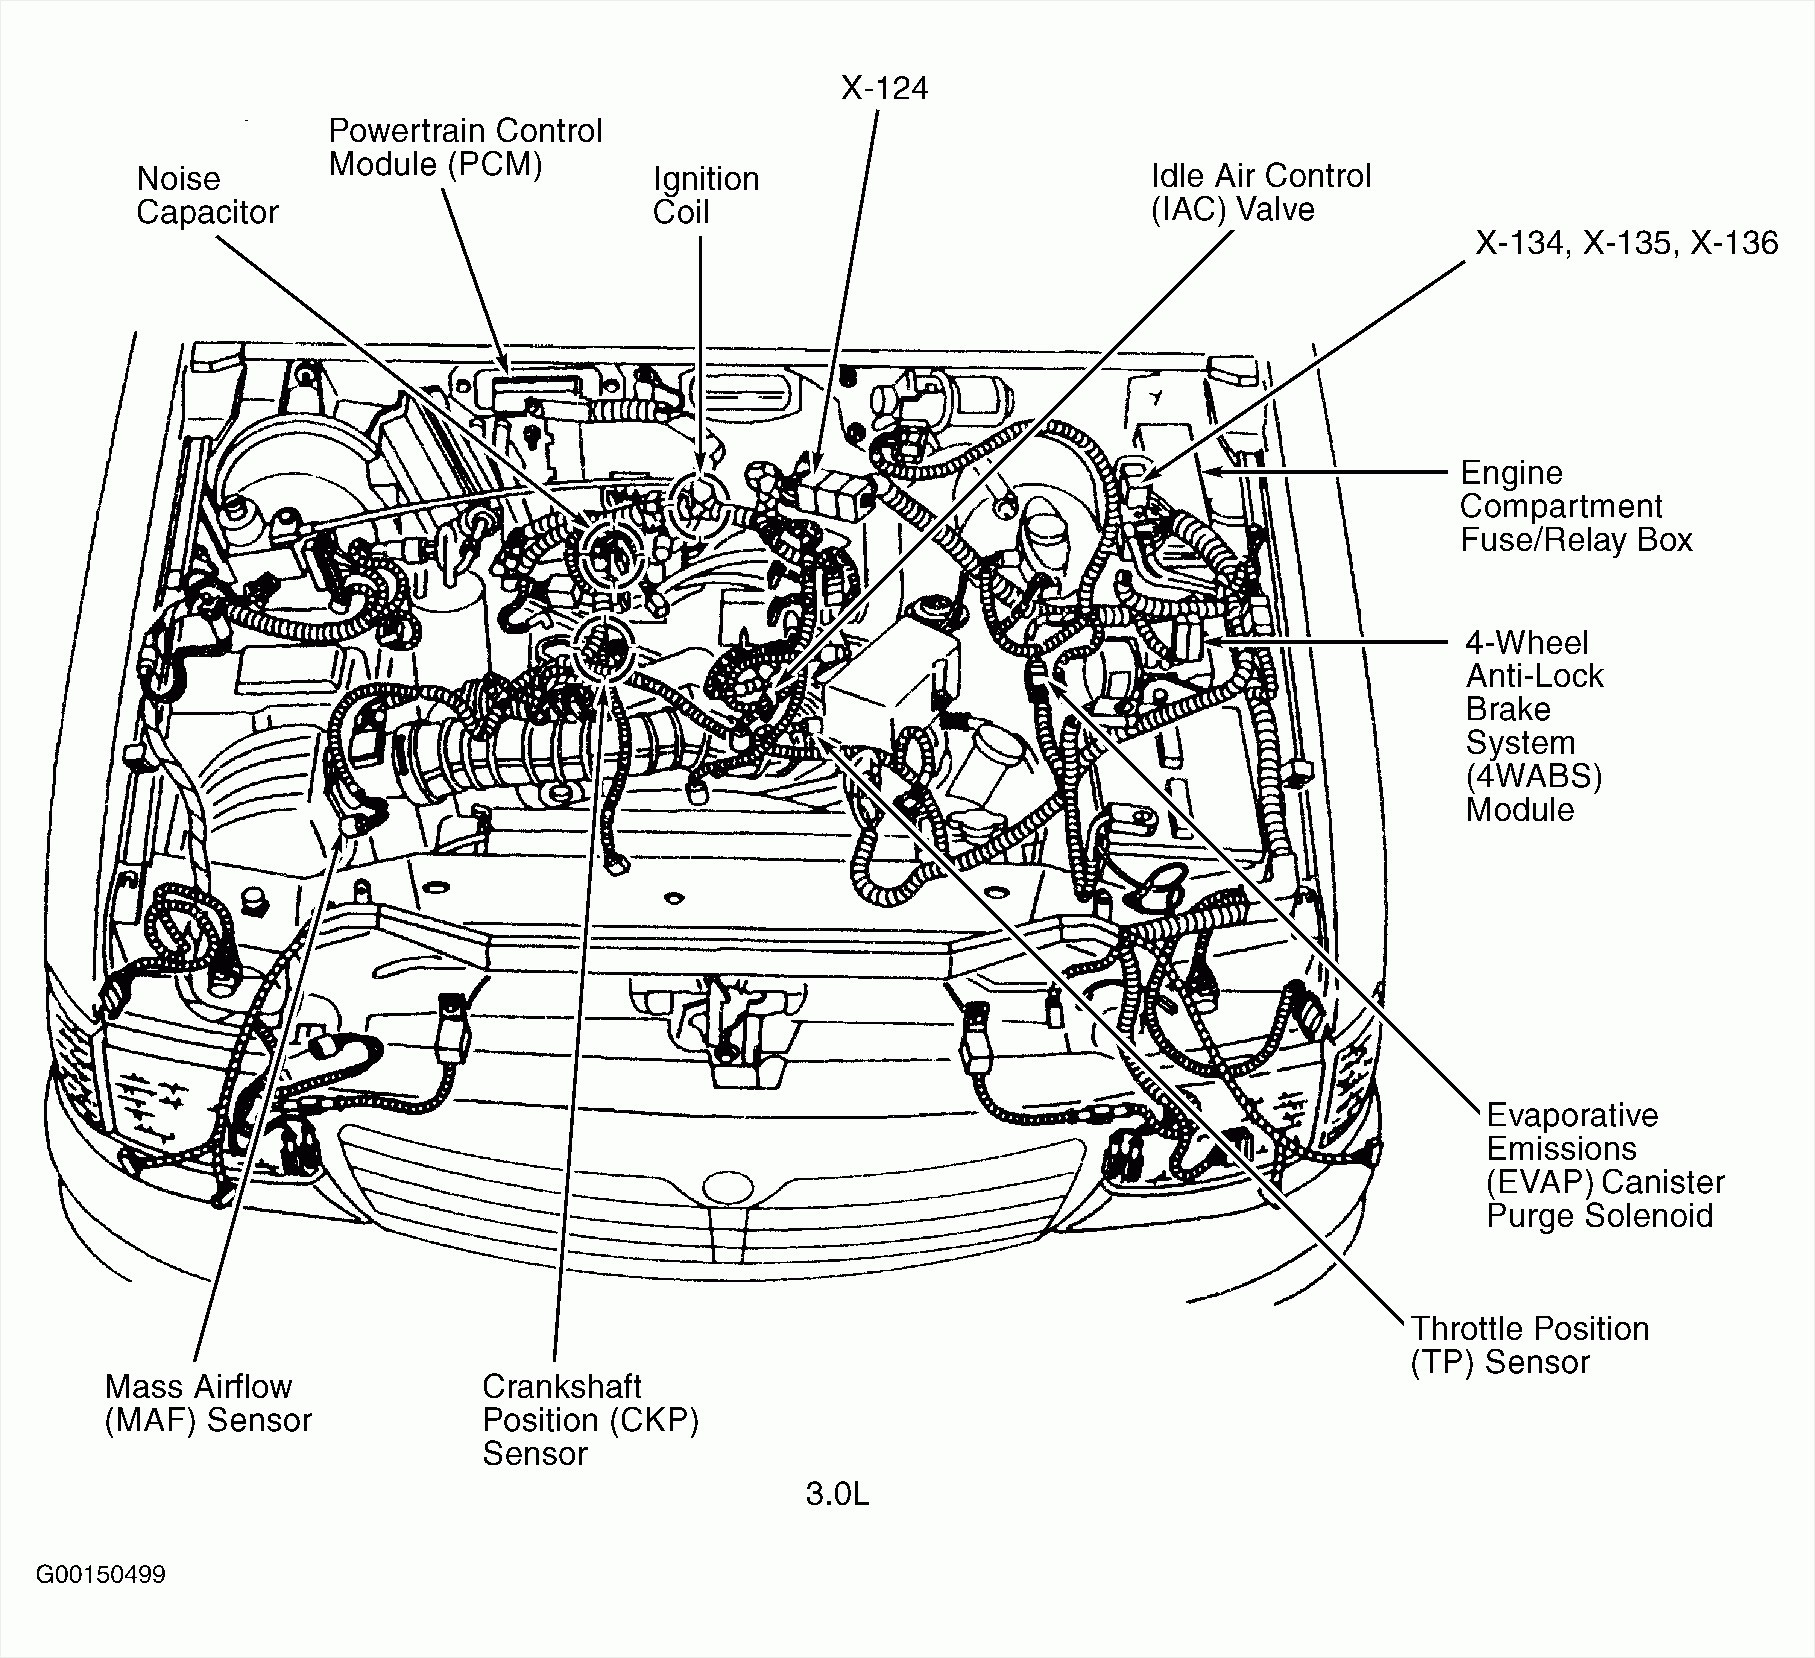 2006 Hyundai sonata Engine Diagram Engine Valve Timing Diagram 2004 Mazda 6  V6 Engine Diagram Wiring